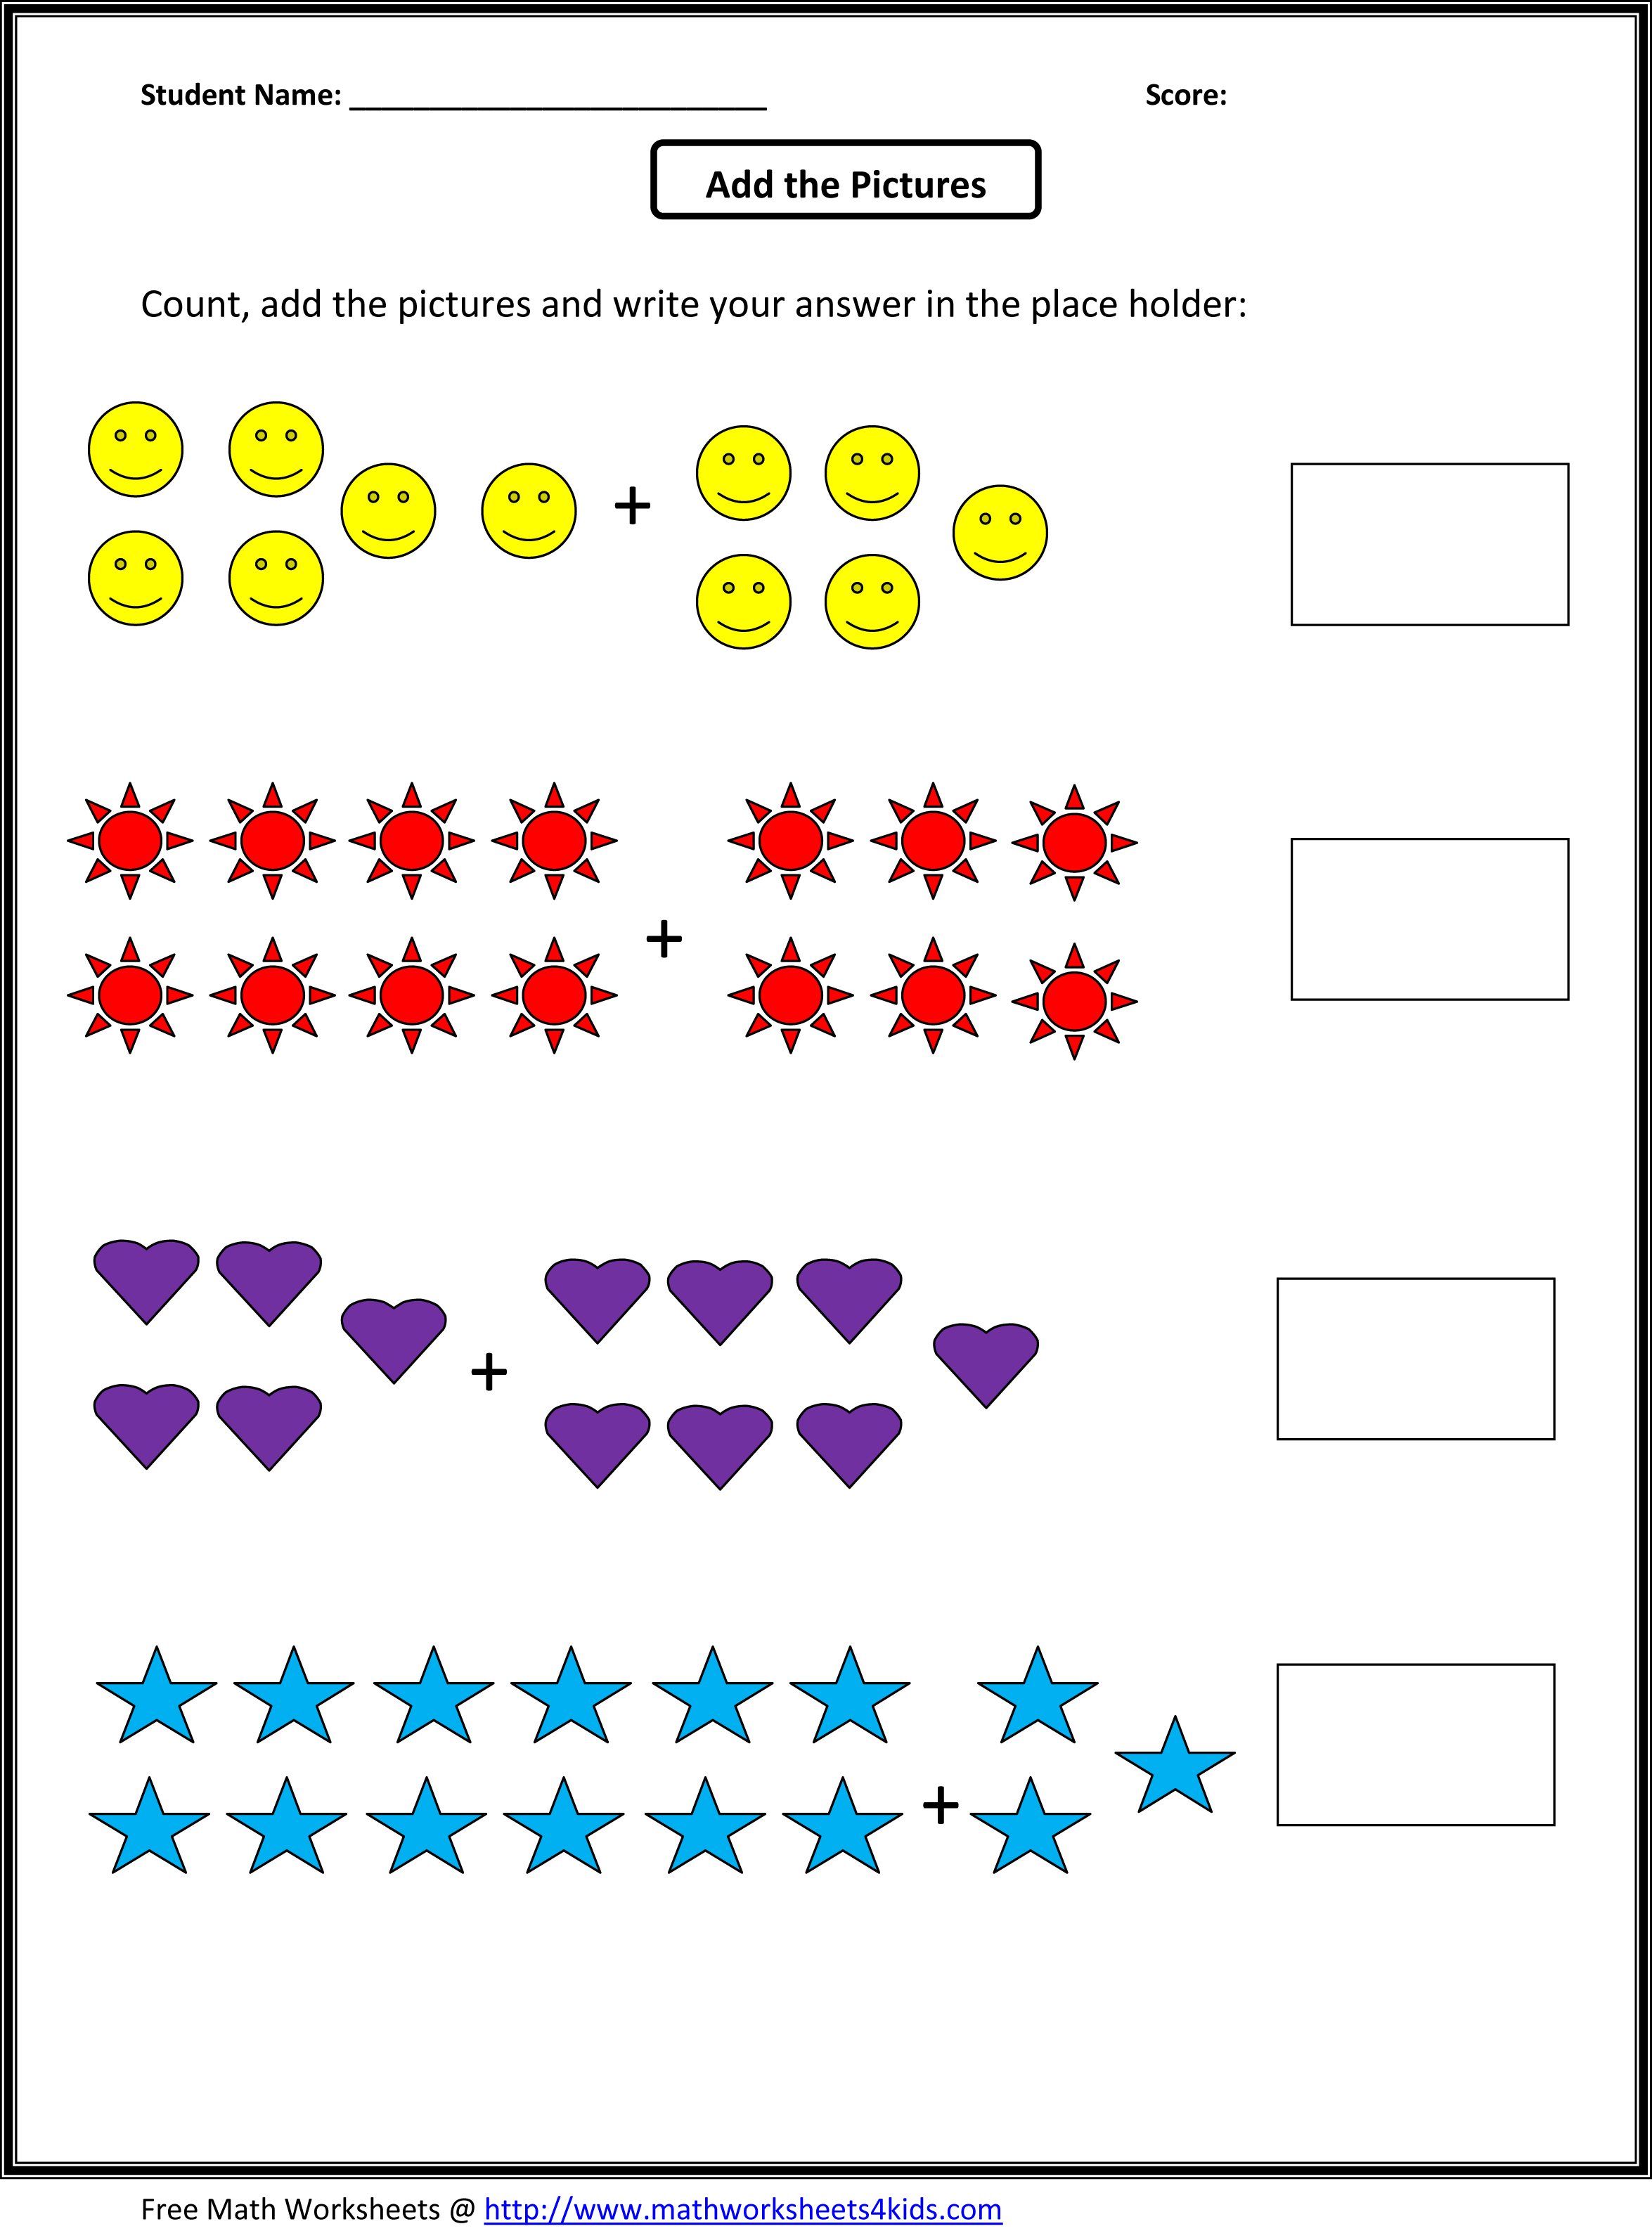 Proatmealus  Marvelous Grade  Maths Worksheet  Reocurent With Fascinating Math Worksheets For St Grade Free  Reocurent With Endearing Excel Password Protect Worksheet Also Free Food Chain Worksheets In Addition King Corn Worksheet And Following Instructions Worksheets As Well As Dependent Clauses Worksheets Additionally Answers To Edhelper Worksheets From Reocurentcom With Proatmealus  Fascinating Grade  Maths Worksheet  Reocurent With Endearing Math Worksheets For St Grade Free  Reocurent And Marvelous Excel Password Protect Worksheet Also Free Food Chain Worksheets In Addition King Corn Worksheet From Reocurentcom